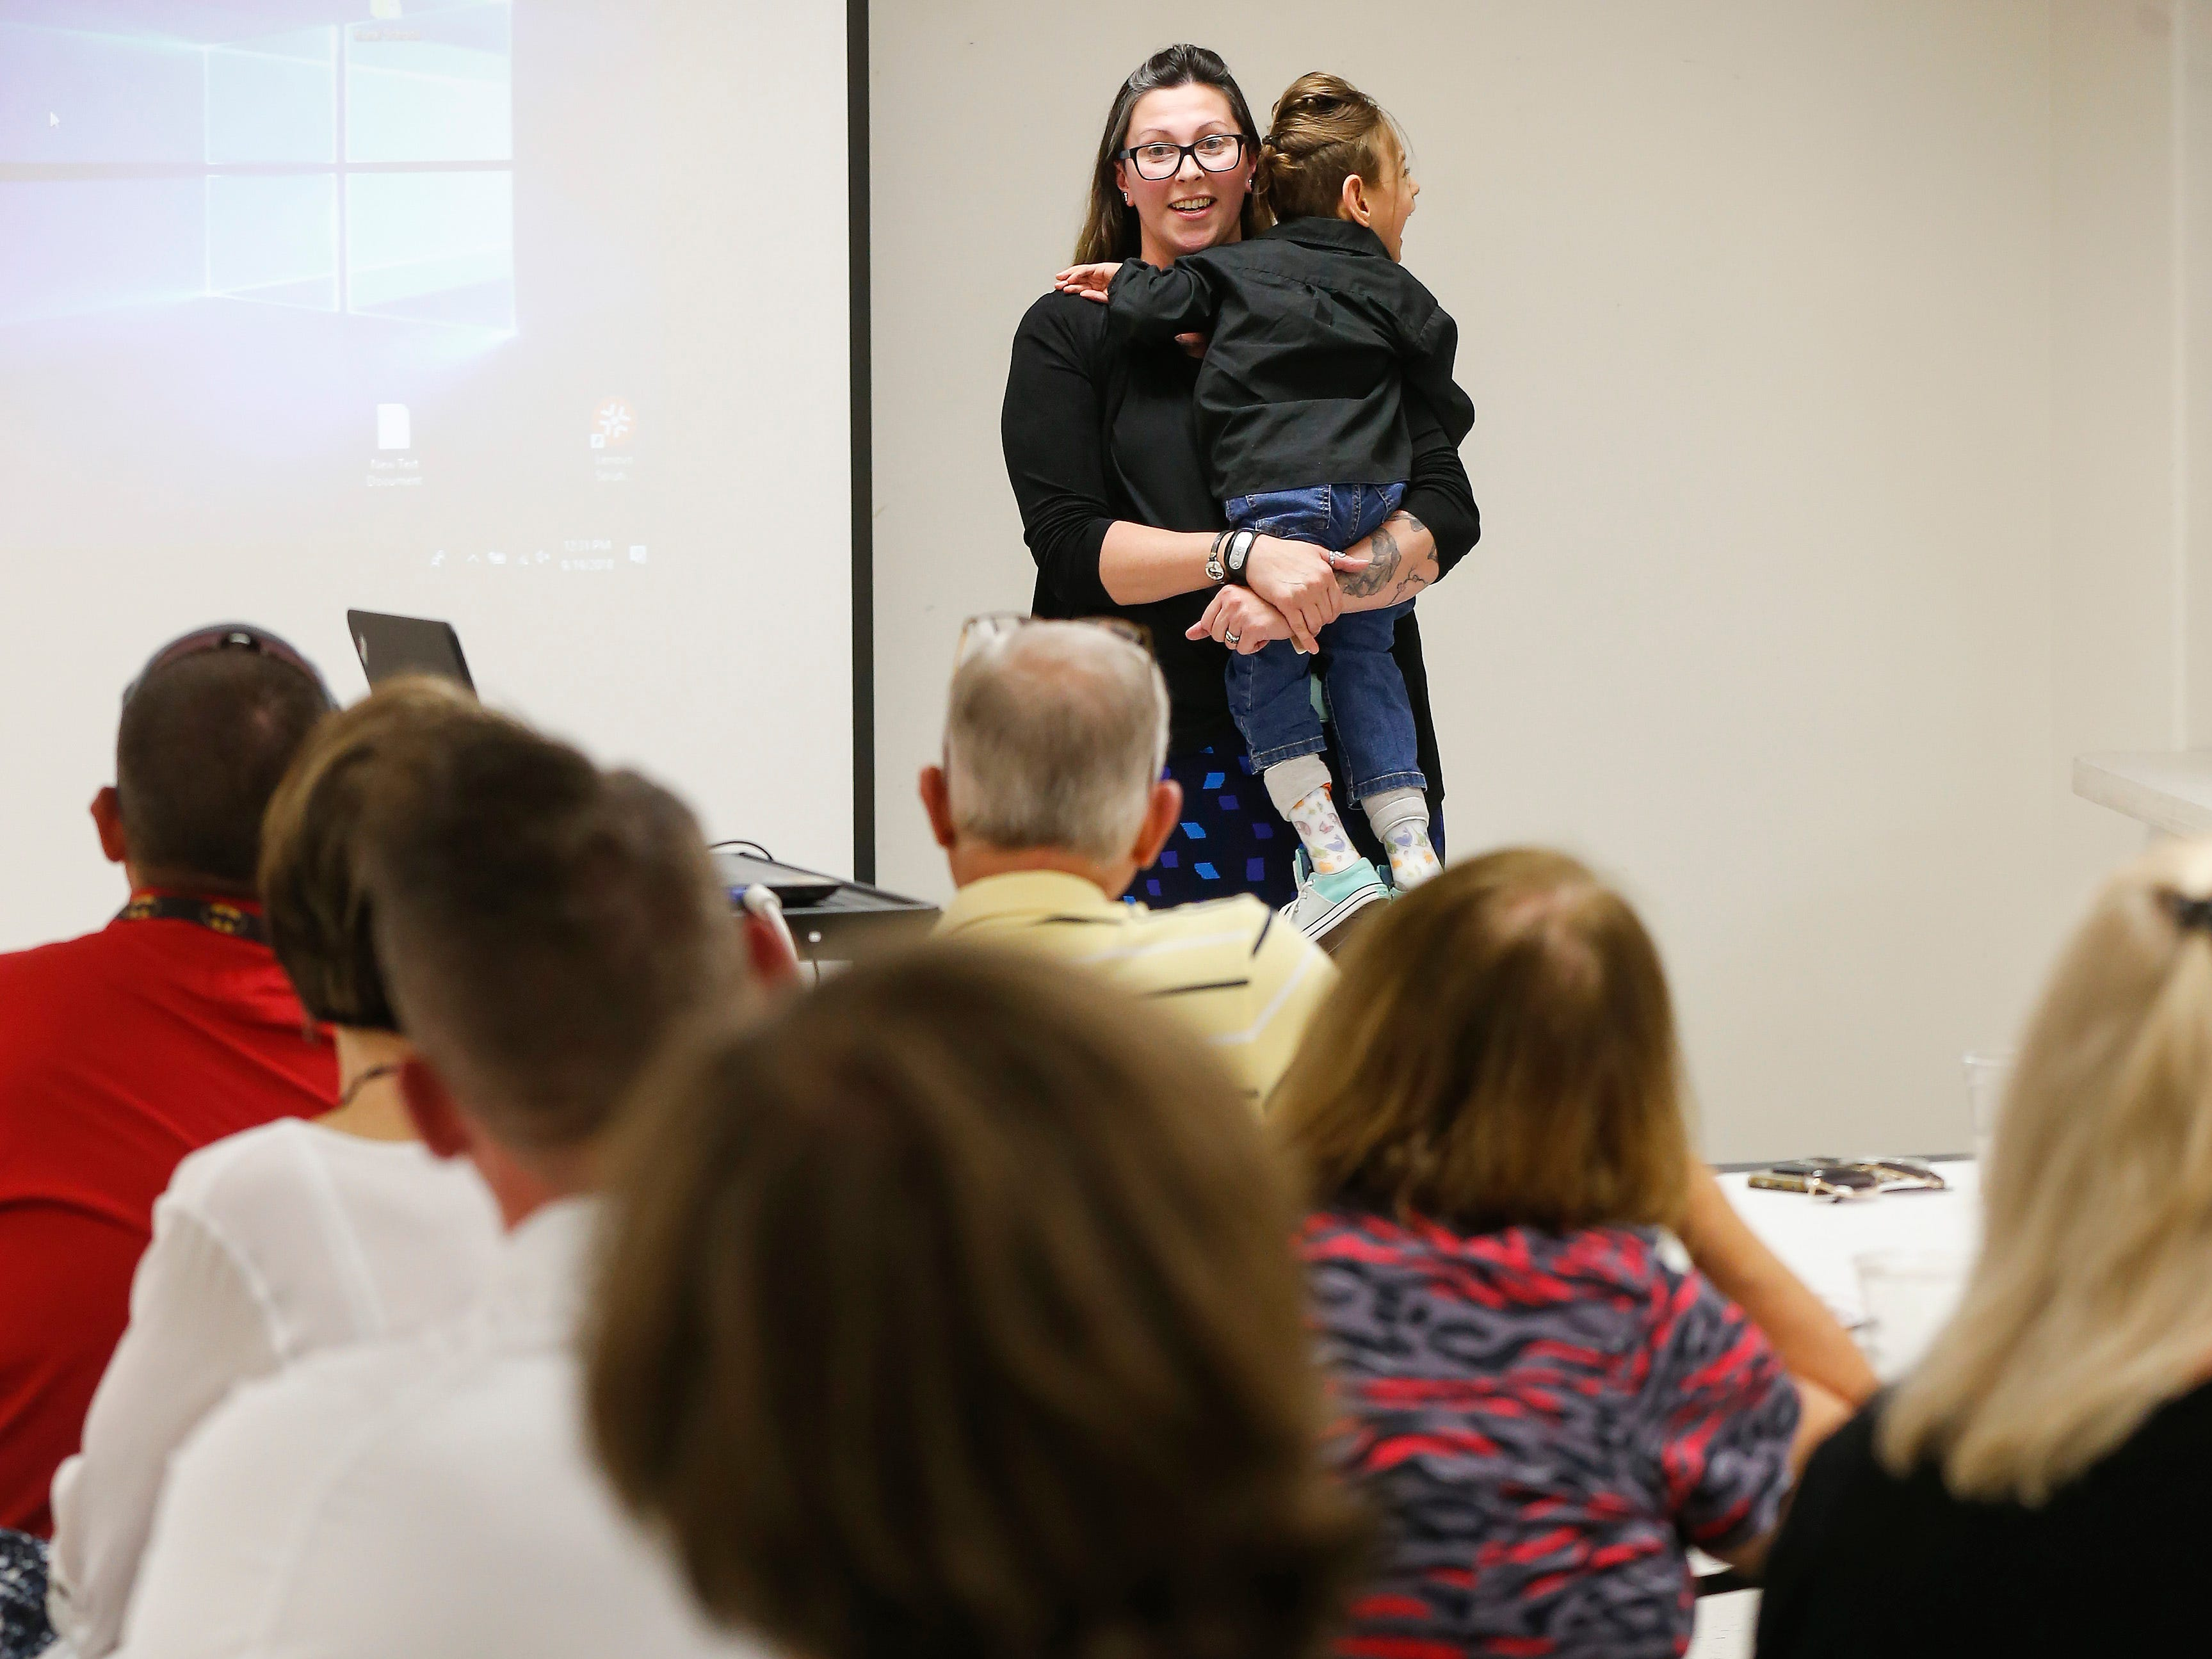 Ashley Markum holds her son Ayden Markum, 5, while speaking about their experience with CBD oil during a Rotary Club meeting at the Barry County Museum in Cassville on Wednesday, Sep. 19, 2018.